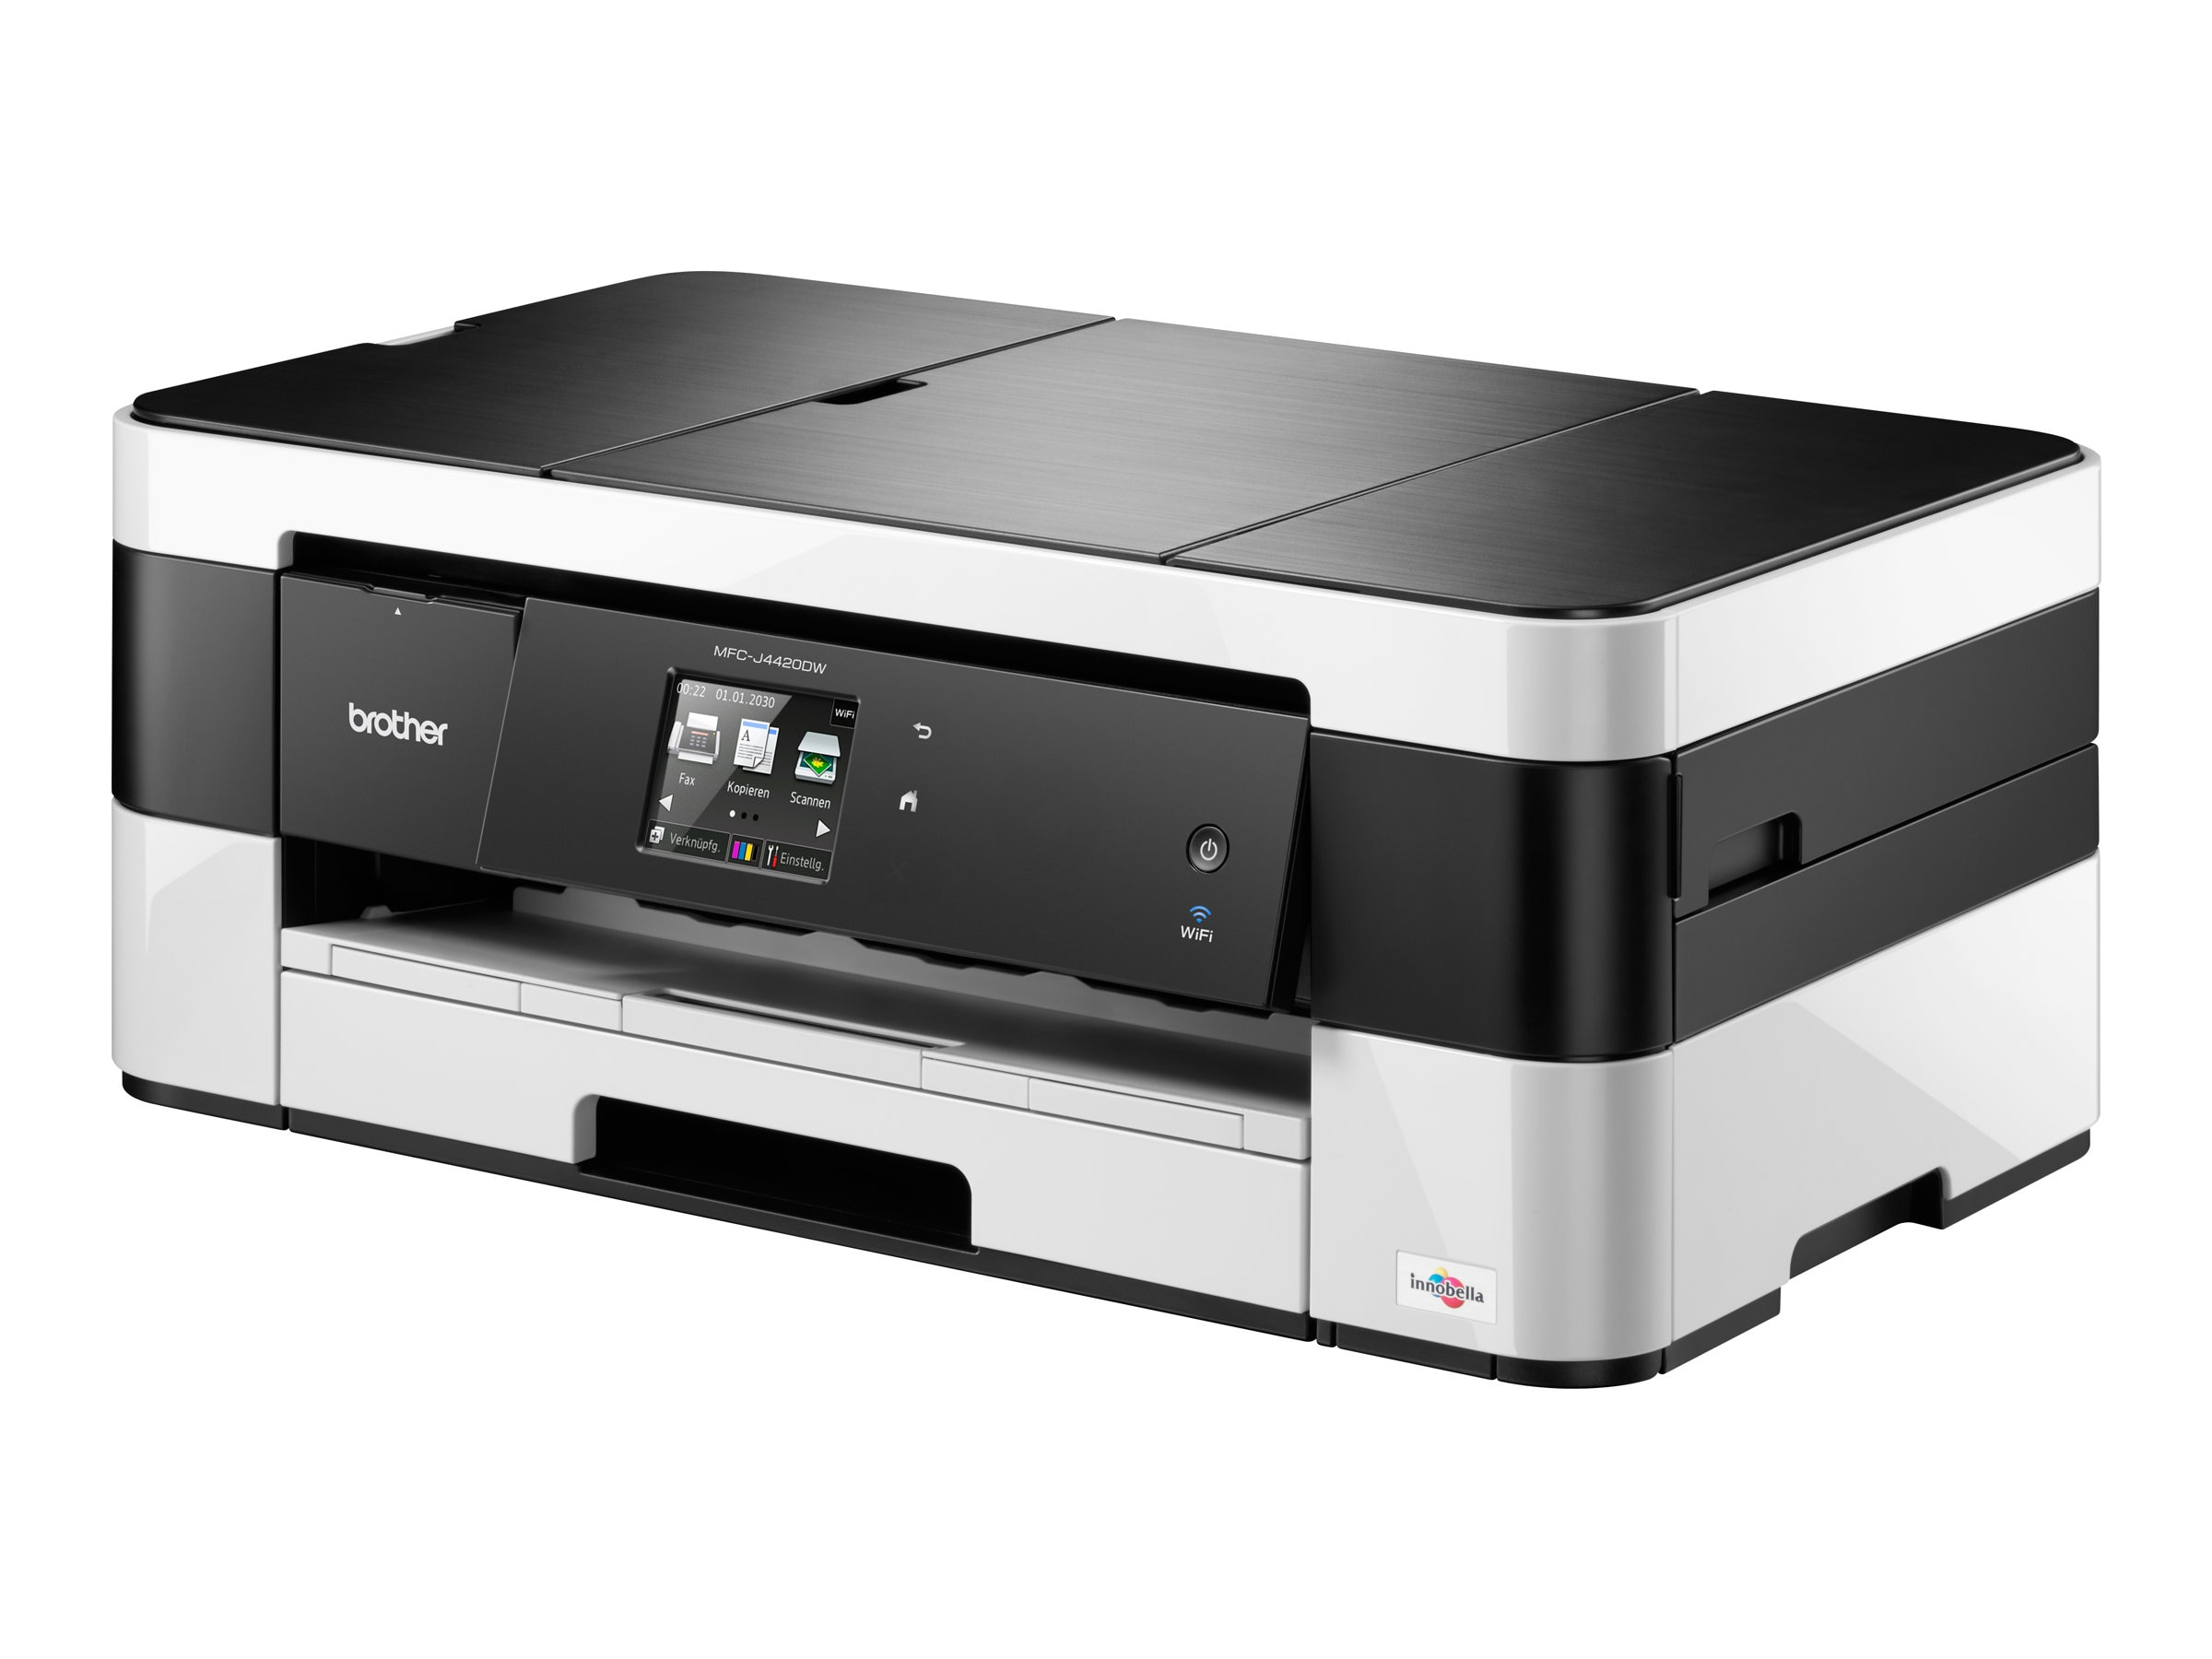 Brother MFC-J4420DW Business Smart Inkjet All-In-One